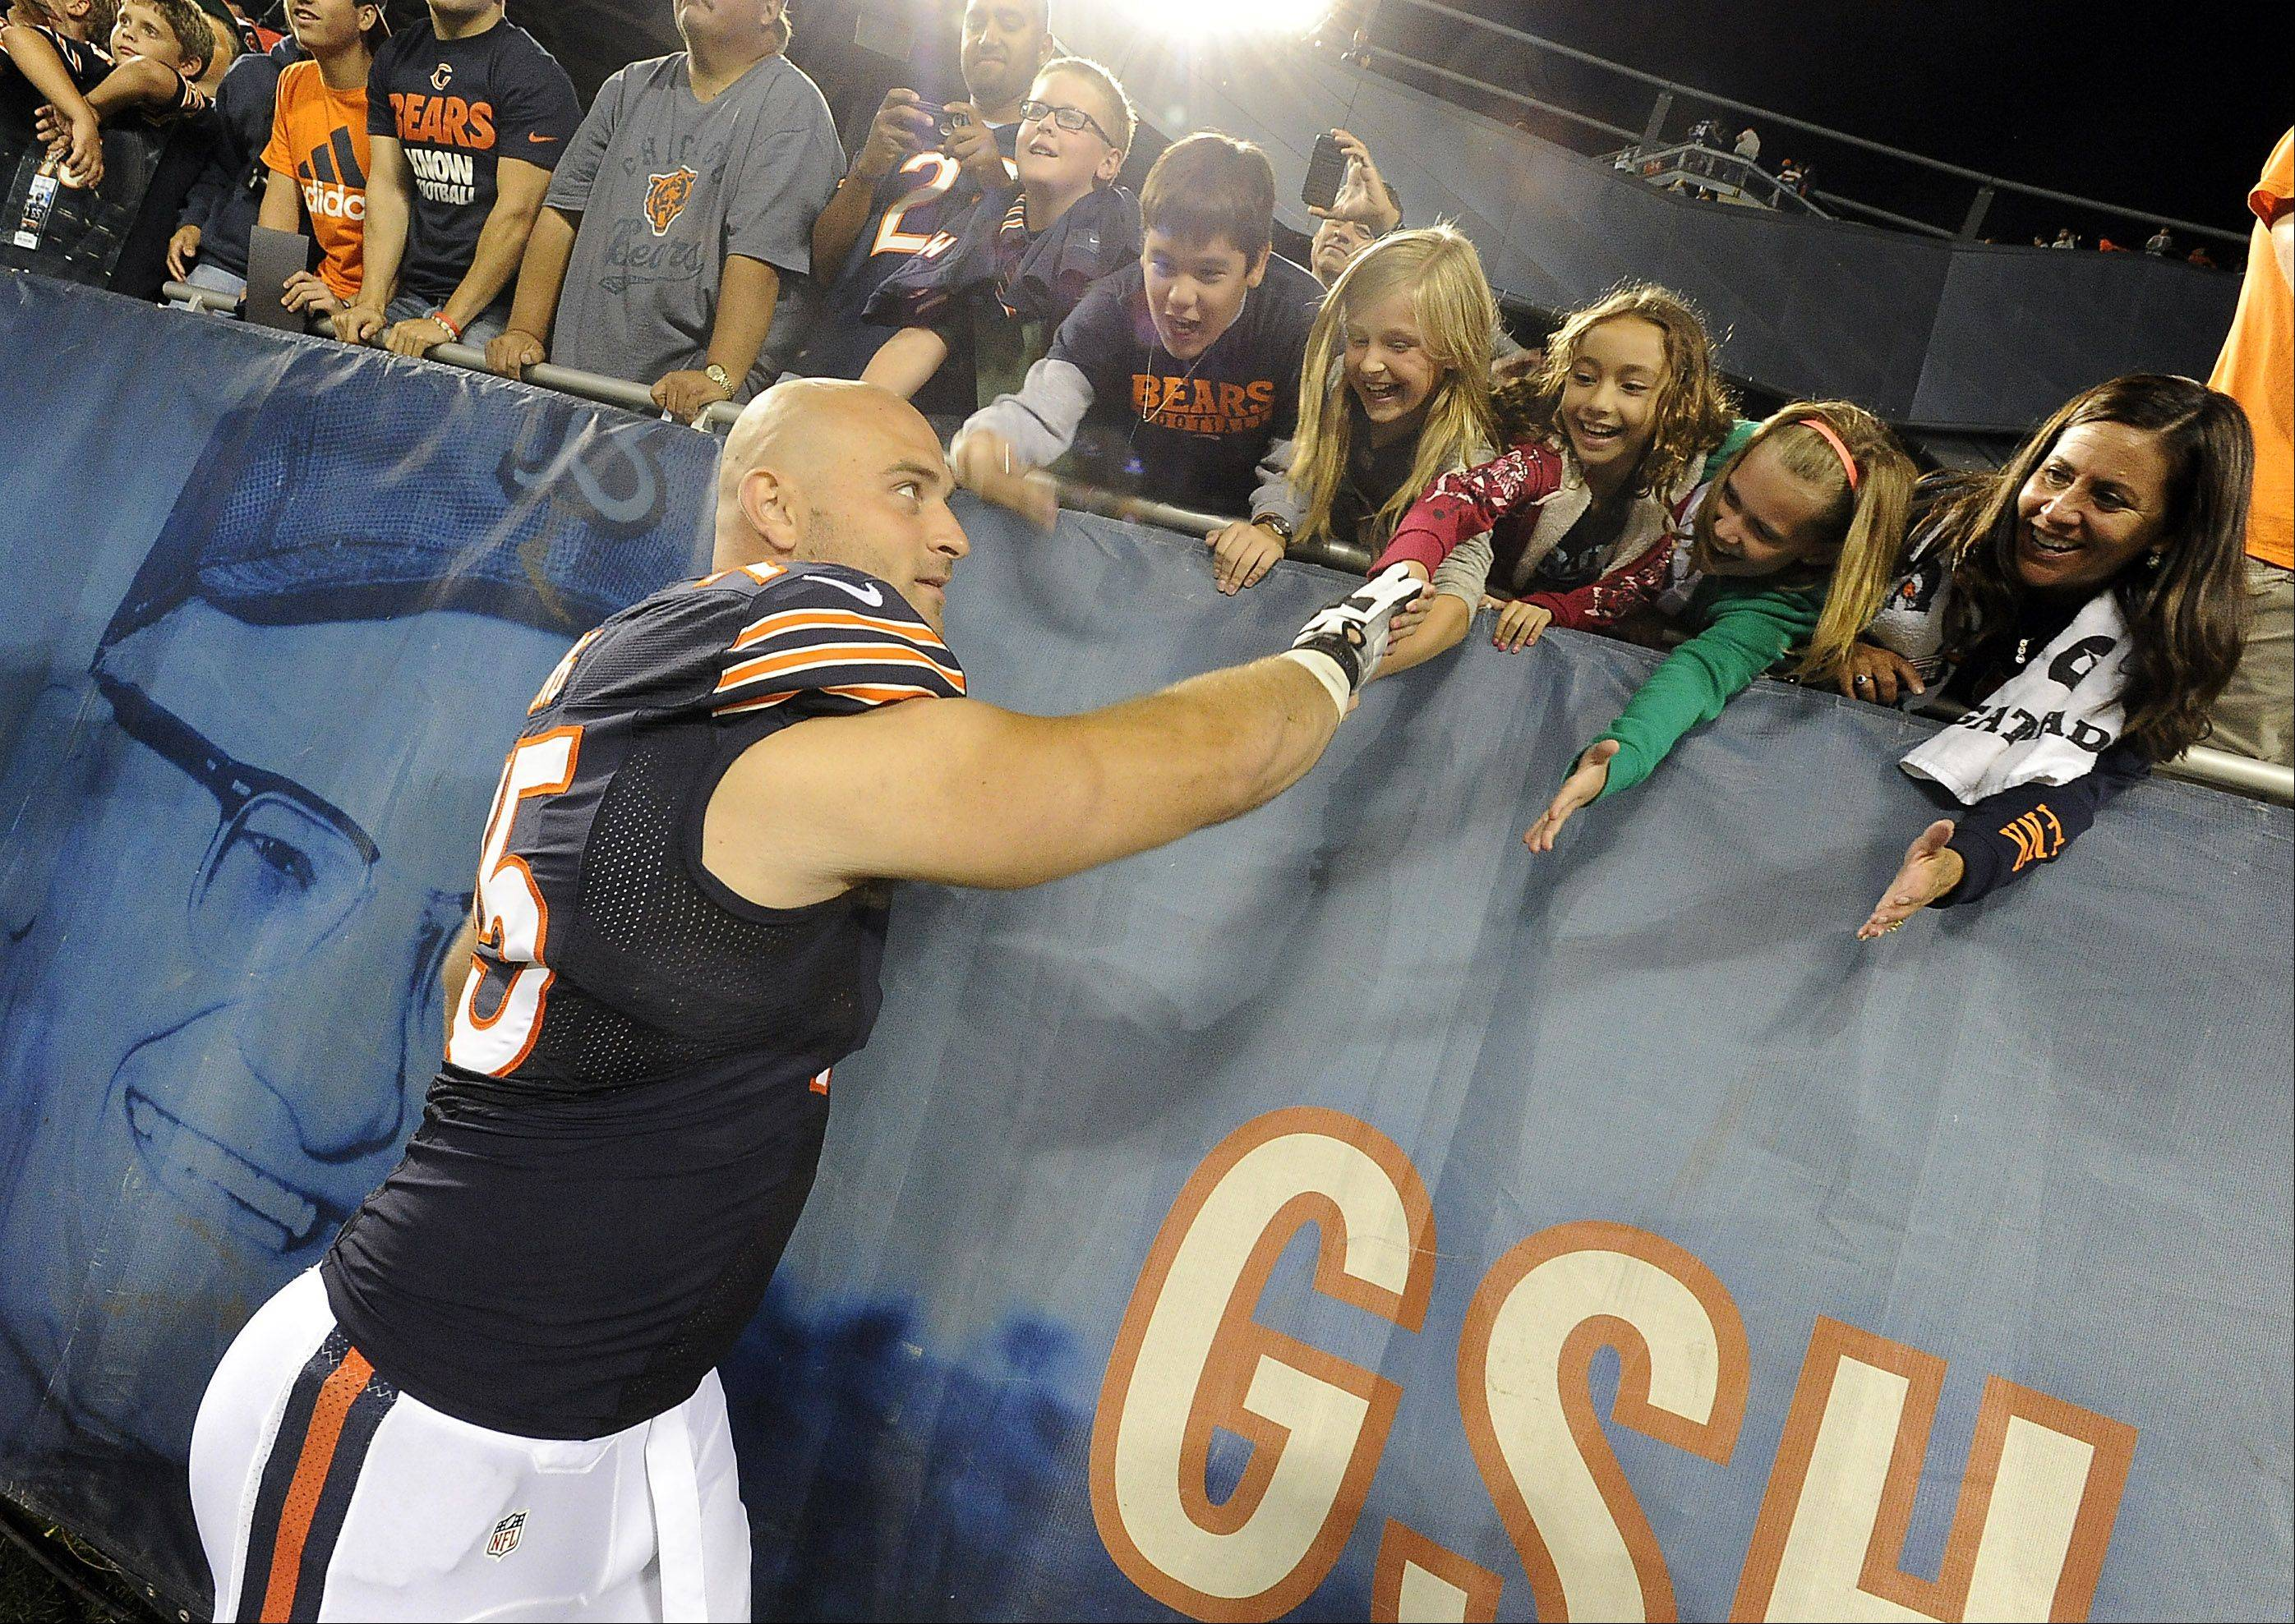 Mark Welsh/mwelsh@dailyherald.com ¬ Bears Kyle Long after the game thanks the fans.